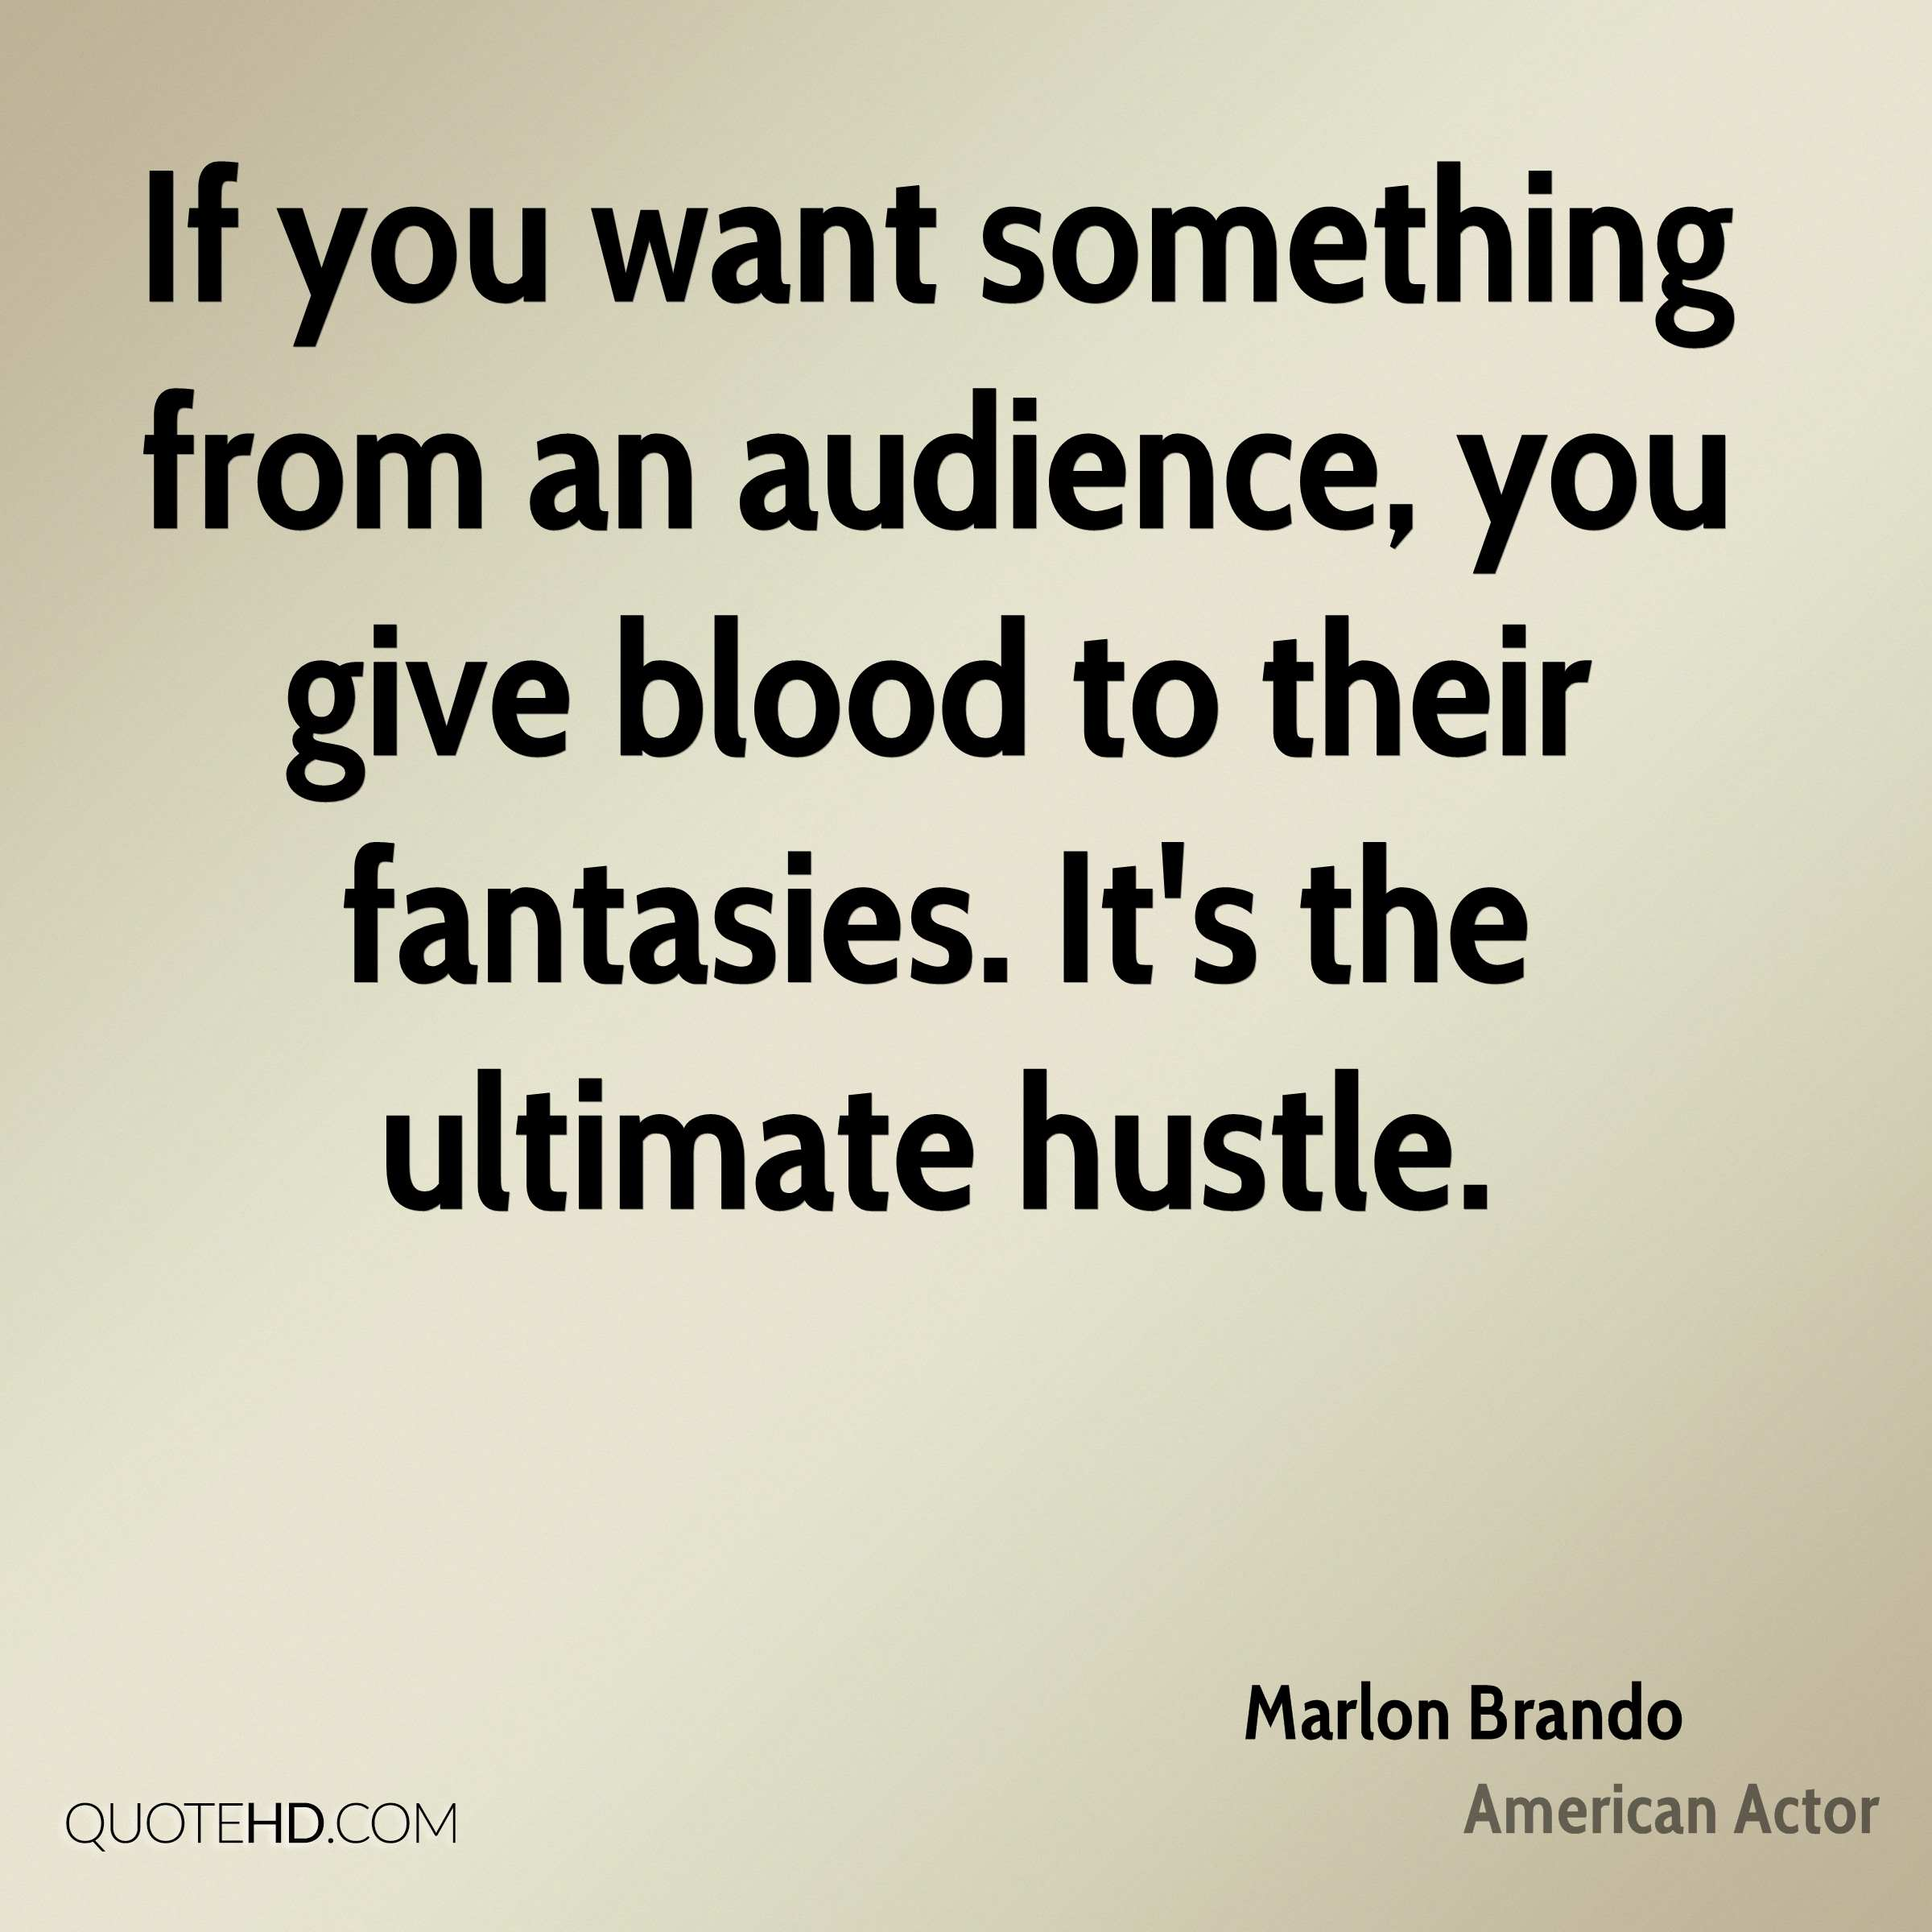 If you want something from an audience, you give blood to their fantasies. It's the ultimate hustle.